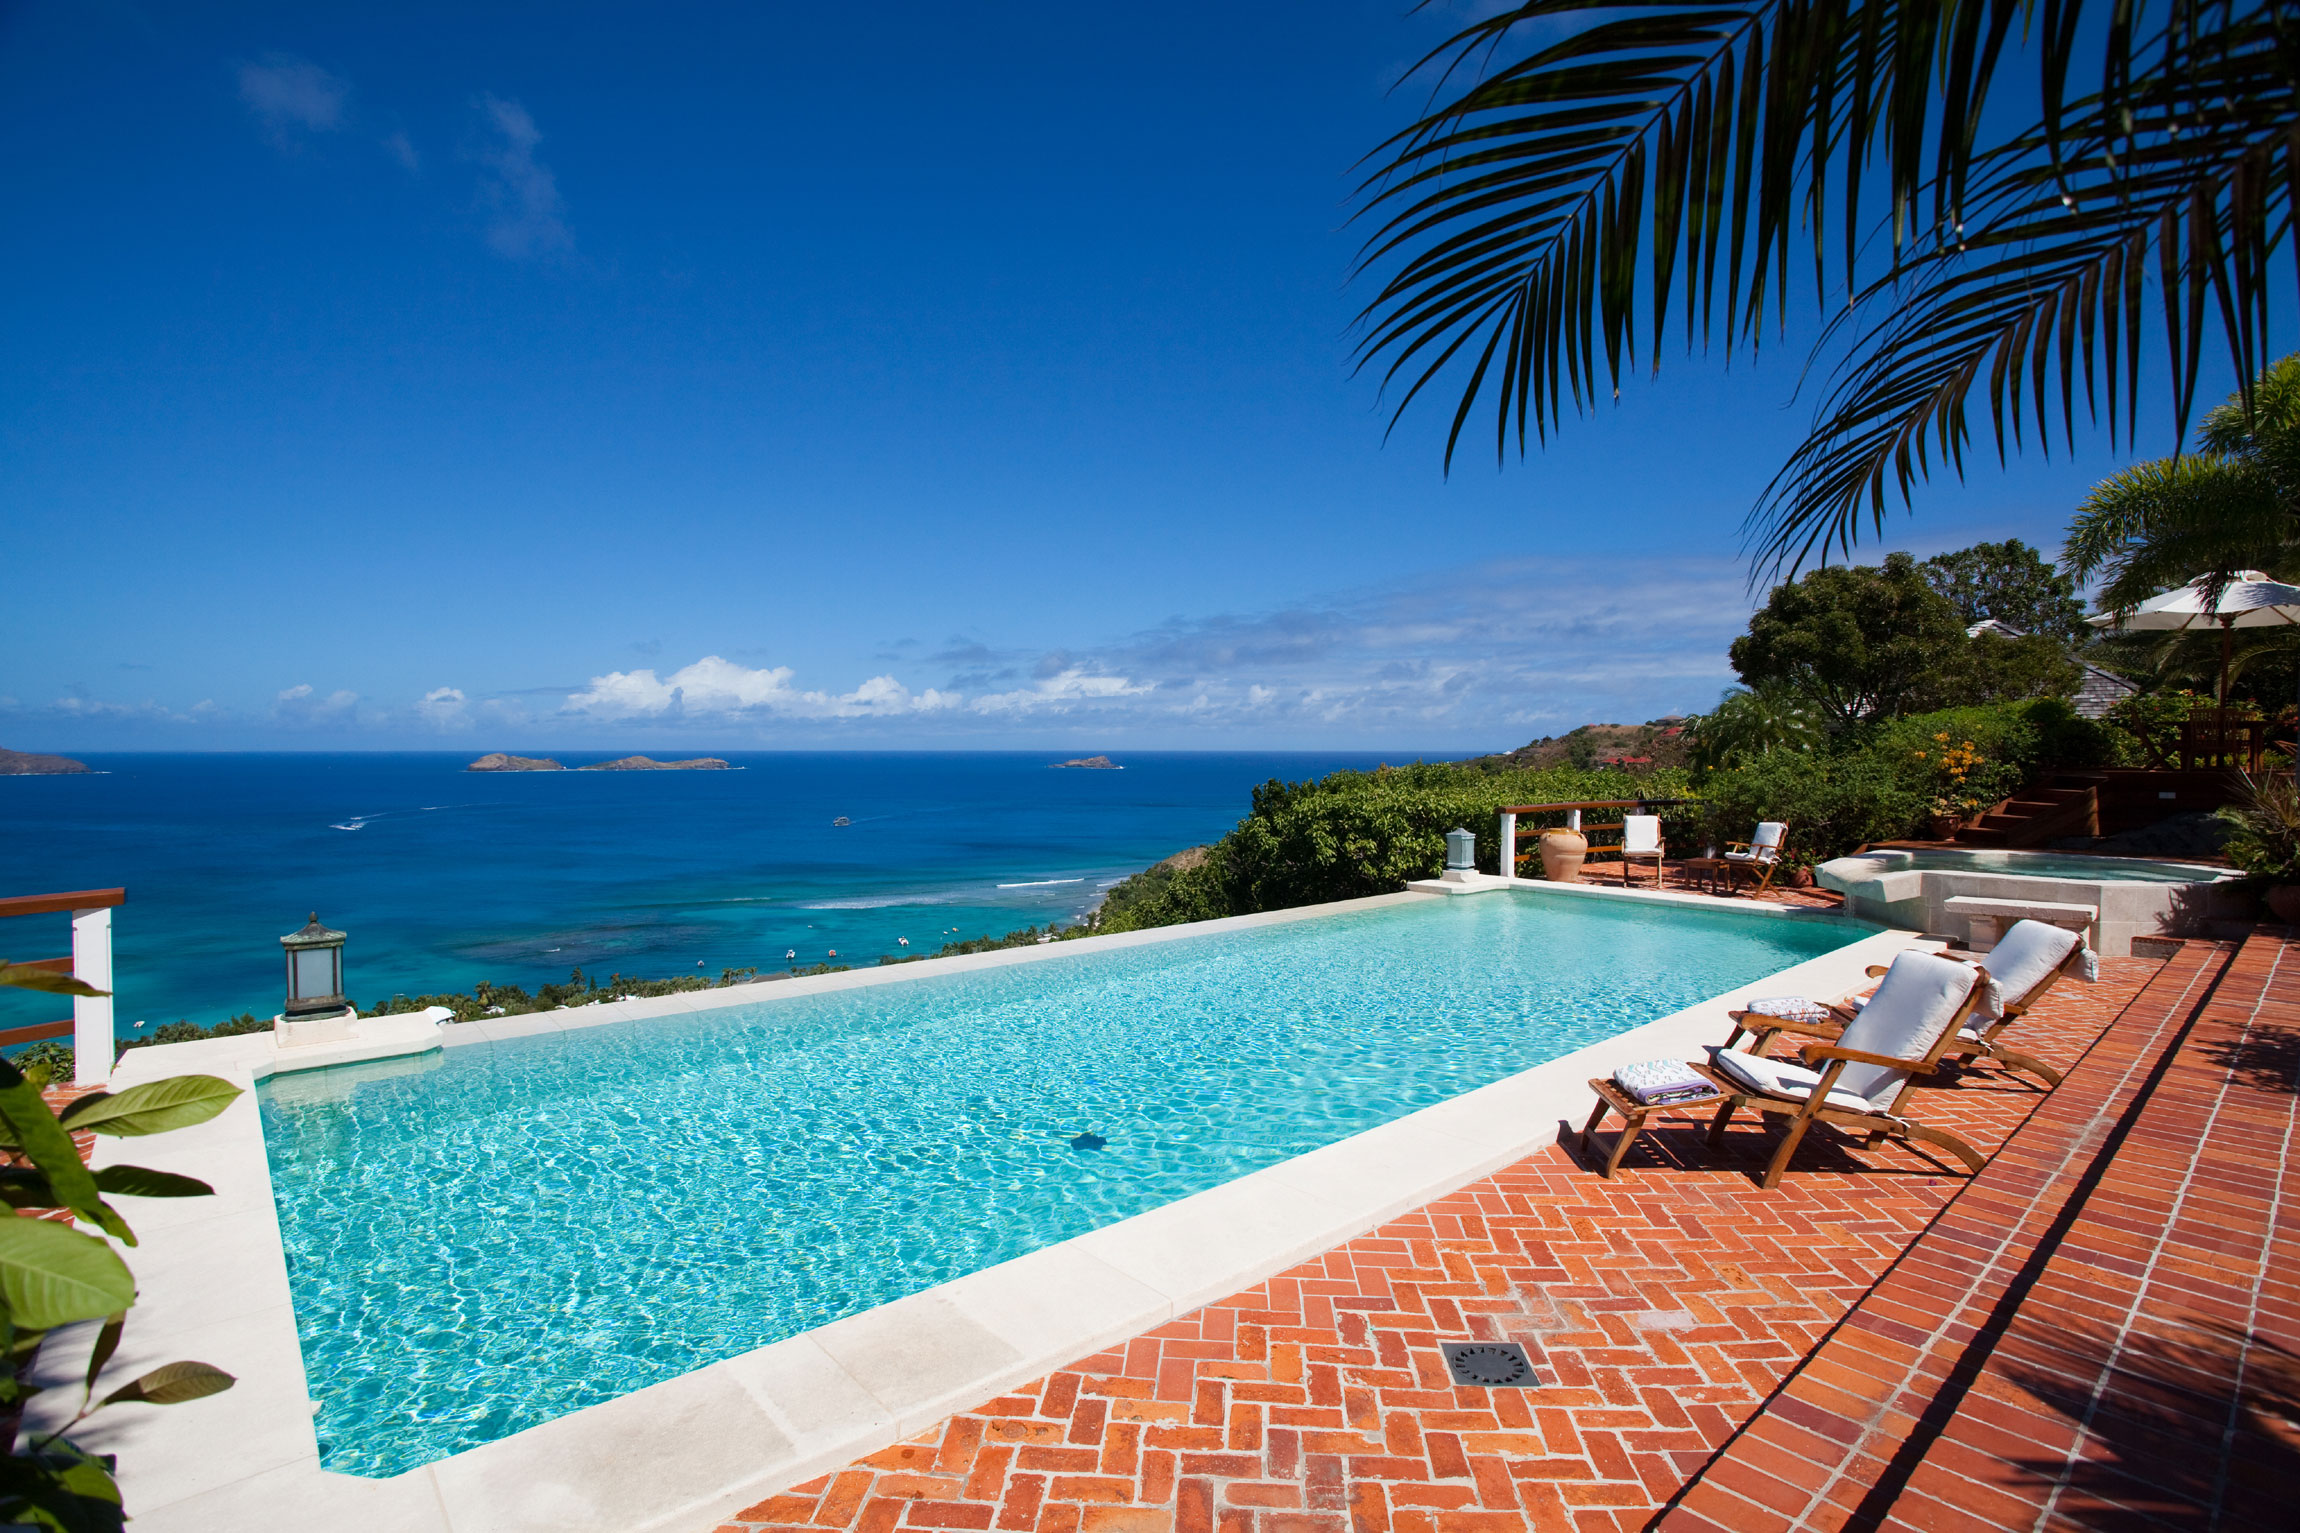 This Caribbean jewel is an enclave of unsurpassed privacy in St. Barts. Located in the French West Indies, St. Barts pristine white-sand beaches, gentle seas, French-Caribbean cuisine, and discreet atmosphere make it a top-ranking winter resort destination for the international glitterati.